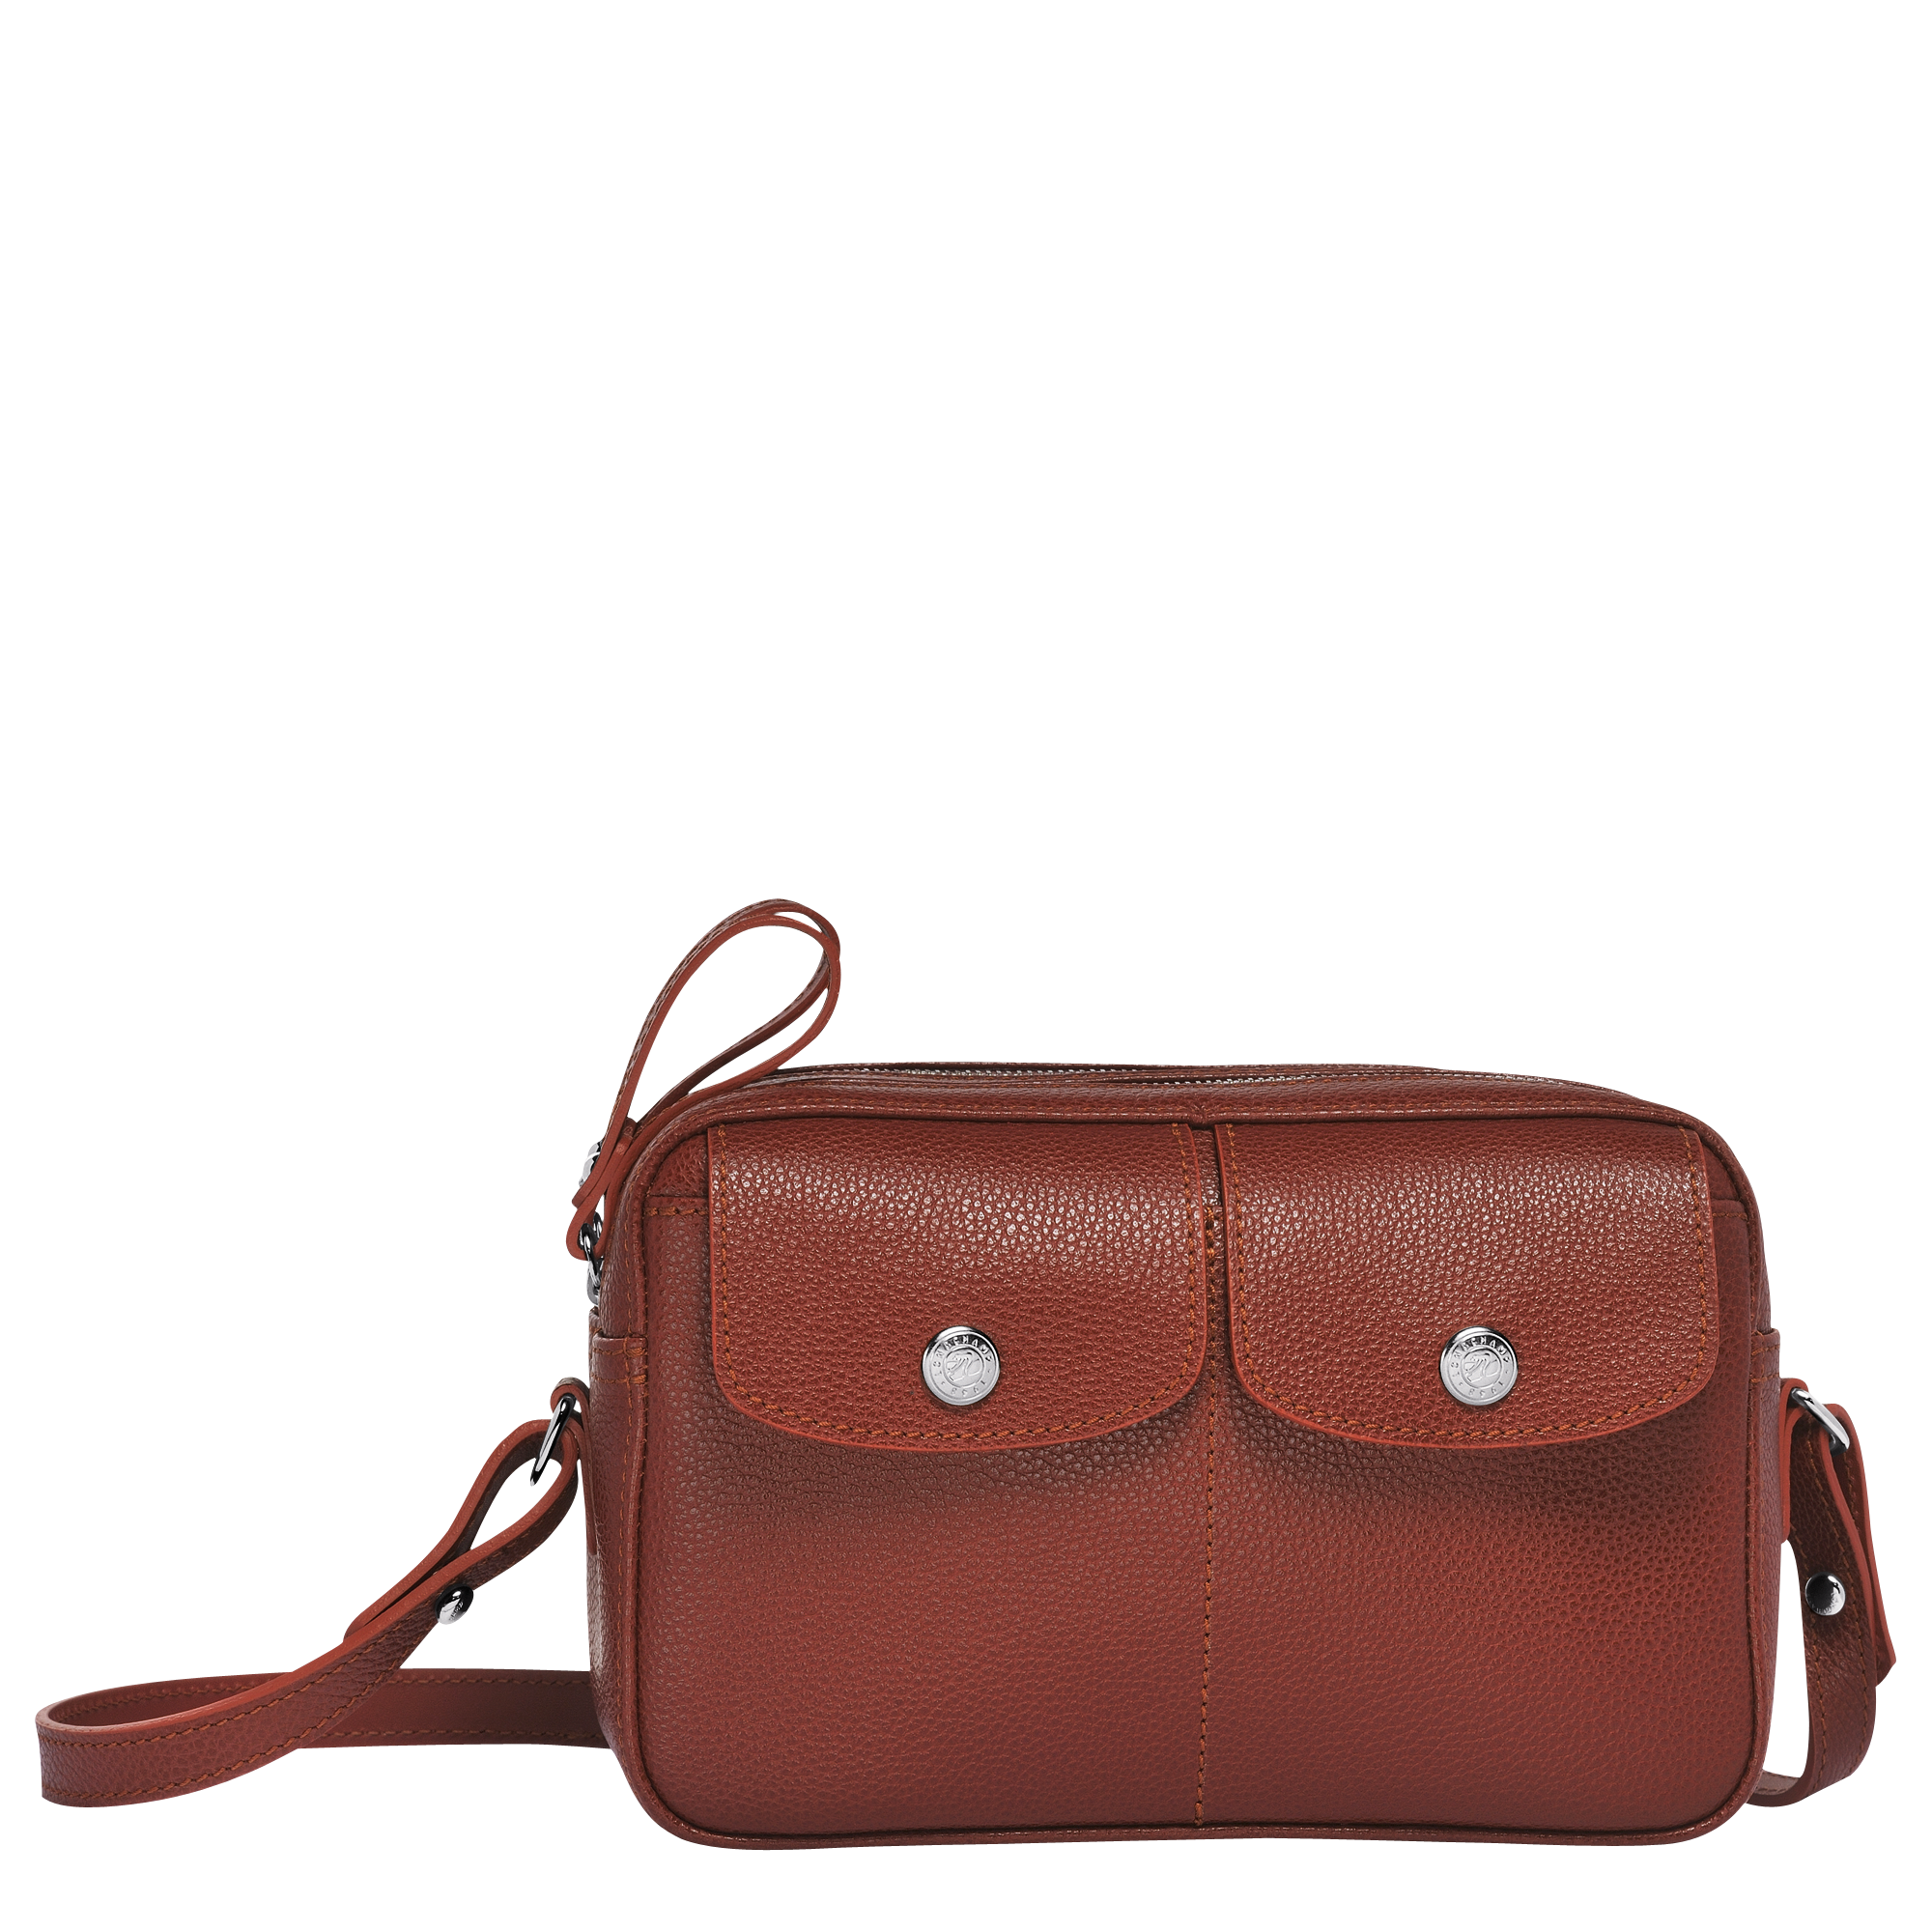 Le Foulonné Bolso Cruzado Granate - Luxury Avenue Boutique